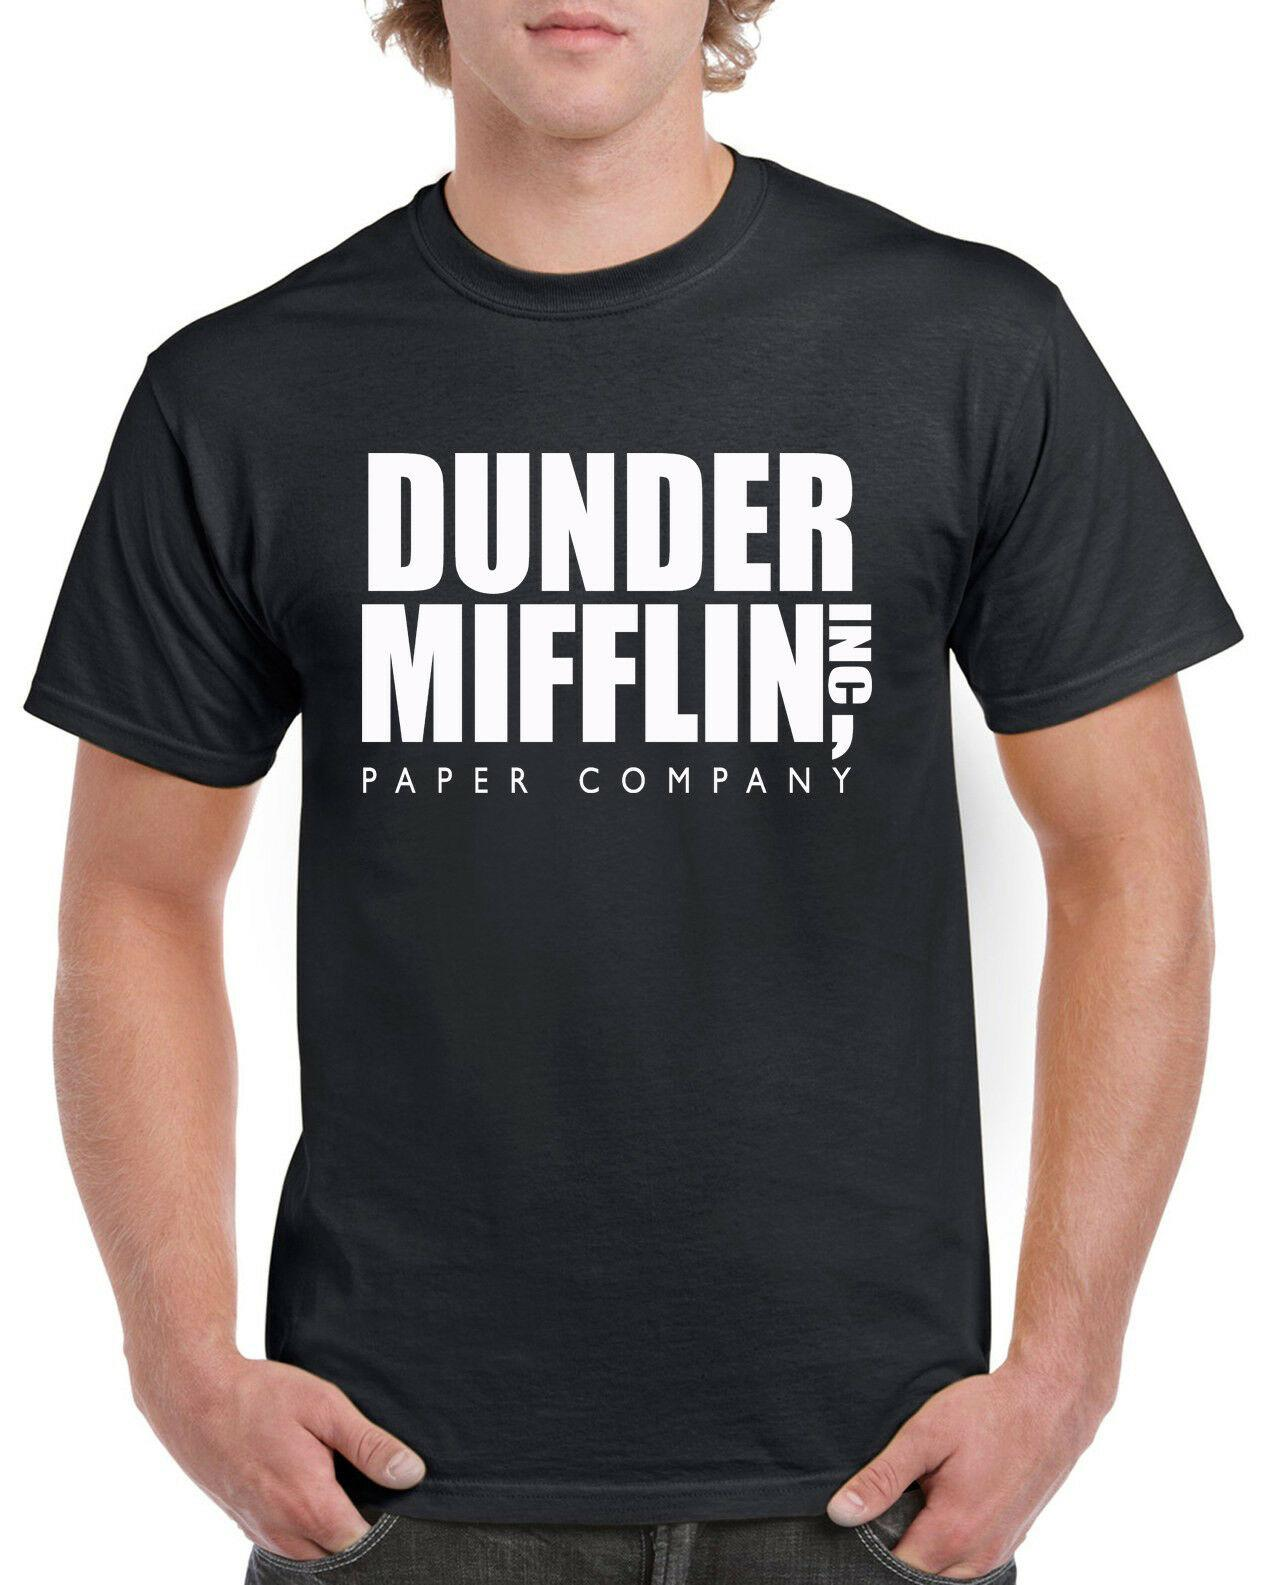 Dunder Mifflin Funny T-Shirt The Office TV Show Gift Funny free shipping Unisex Tshirt top